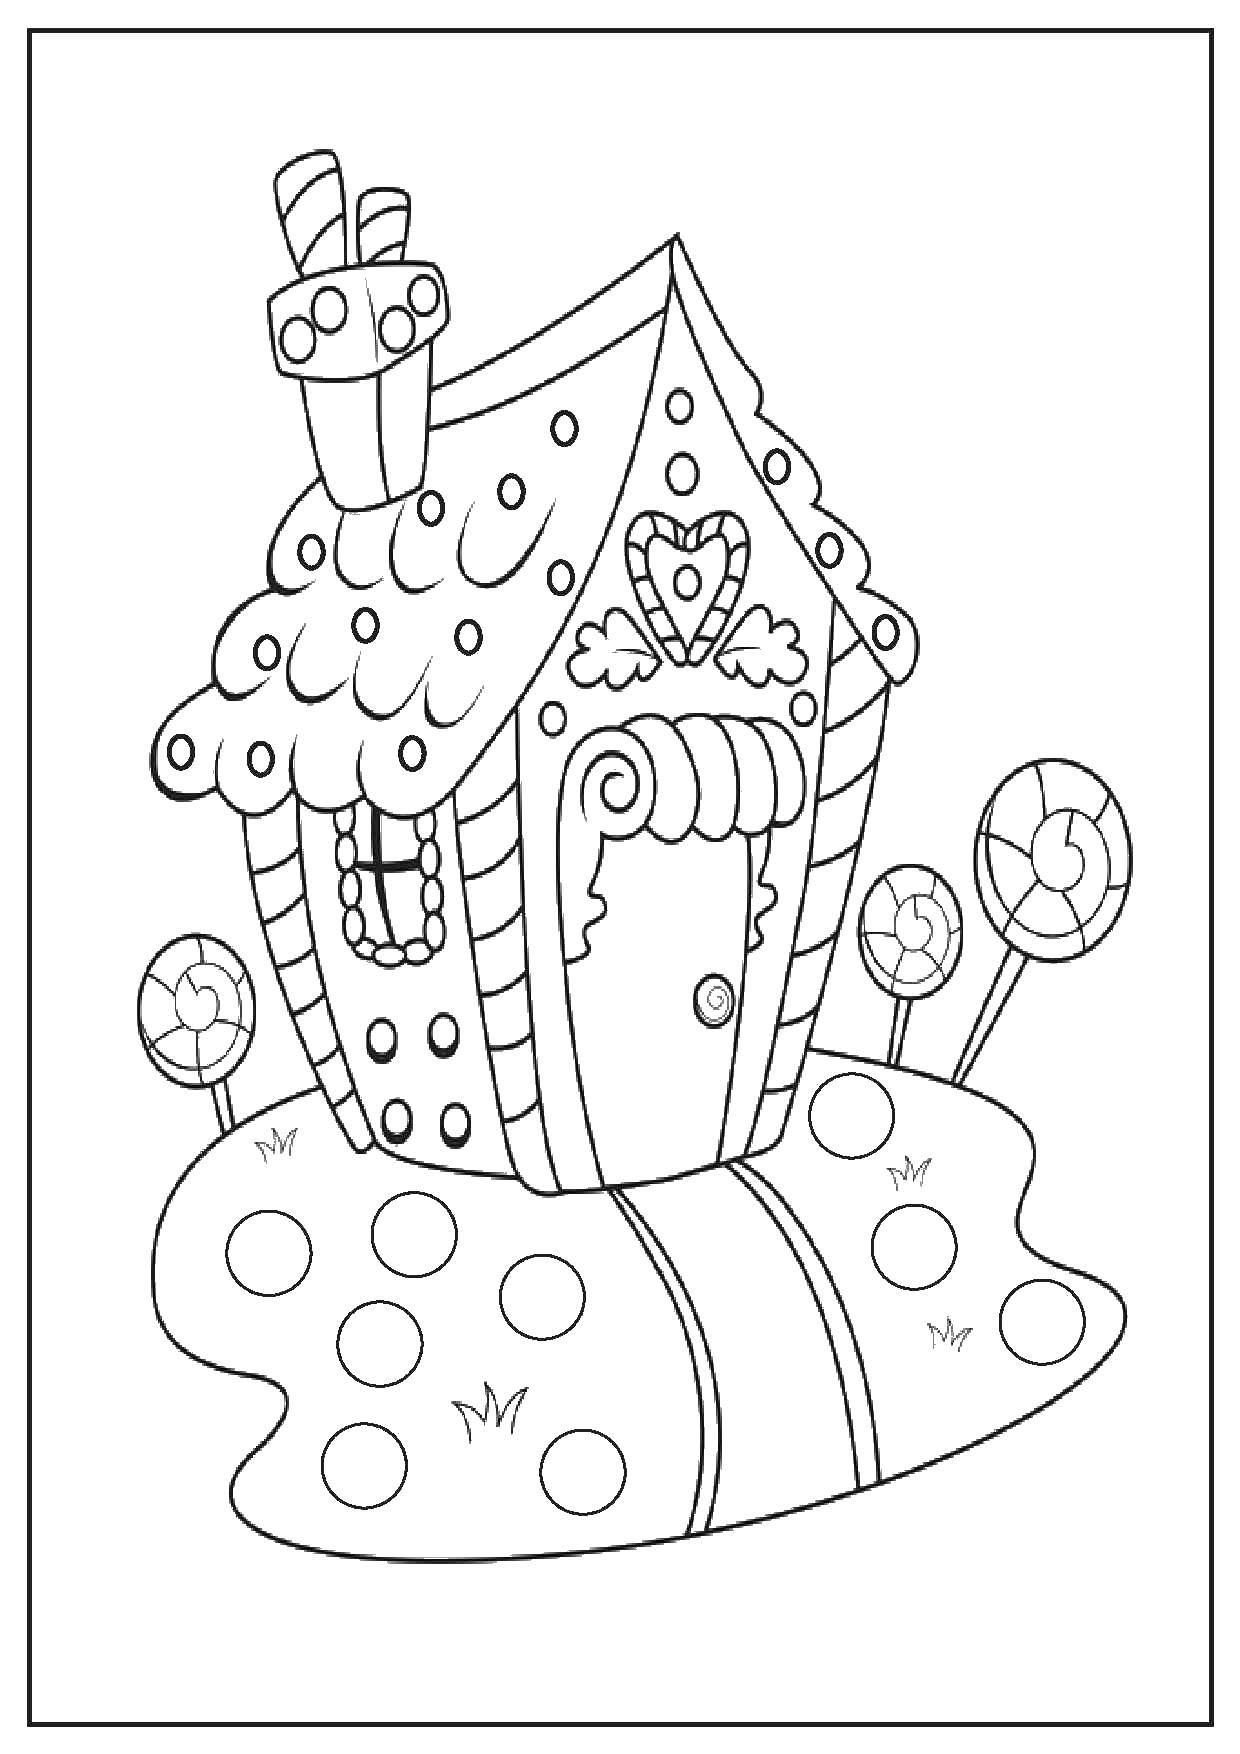 Toys Coloring Pages - Best Coloring Pages For Kids | 1754x1240